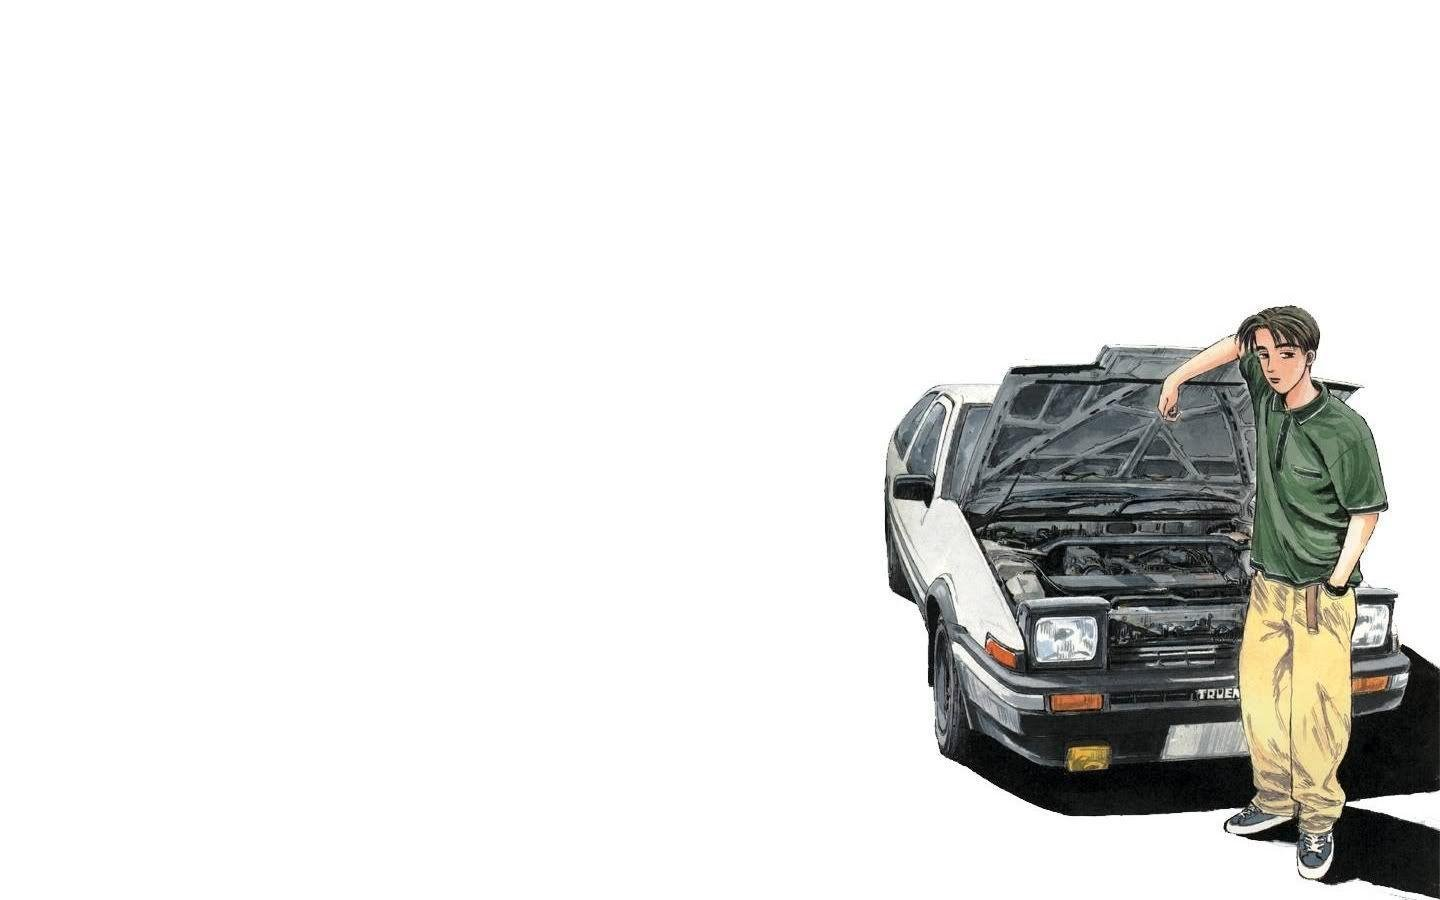 Pics For gt Initial D Takumi Wallpaper 1440x900